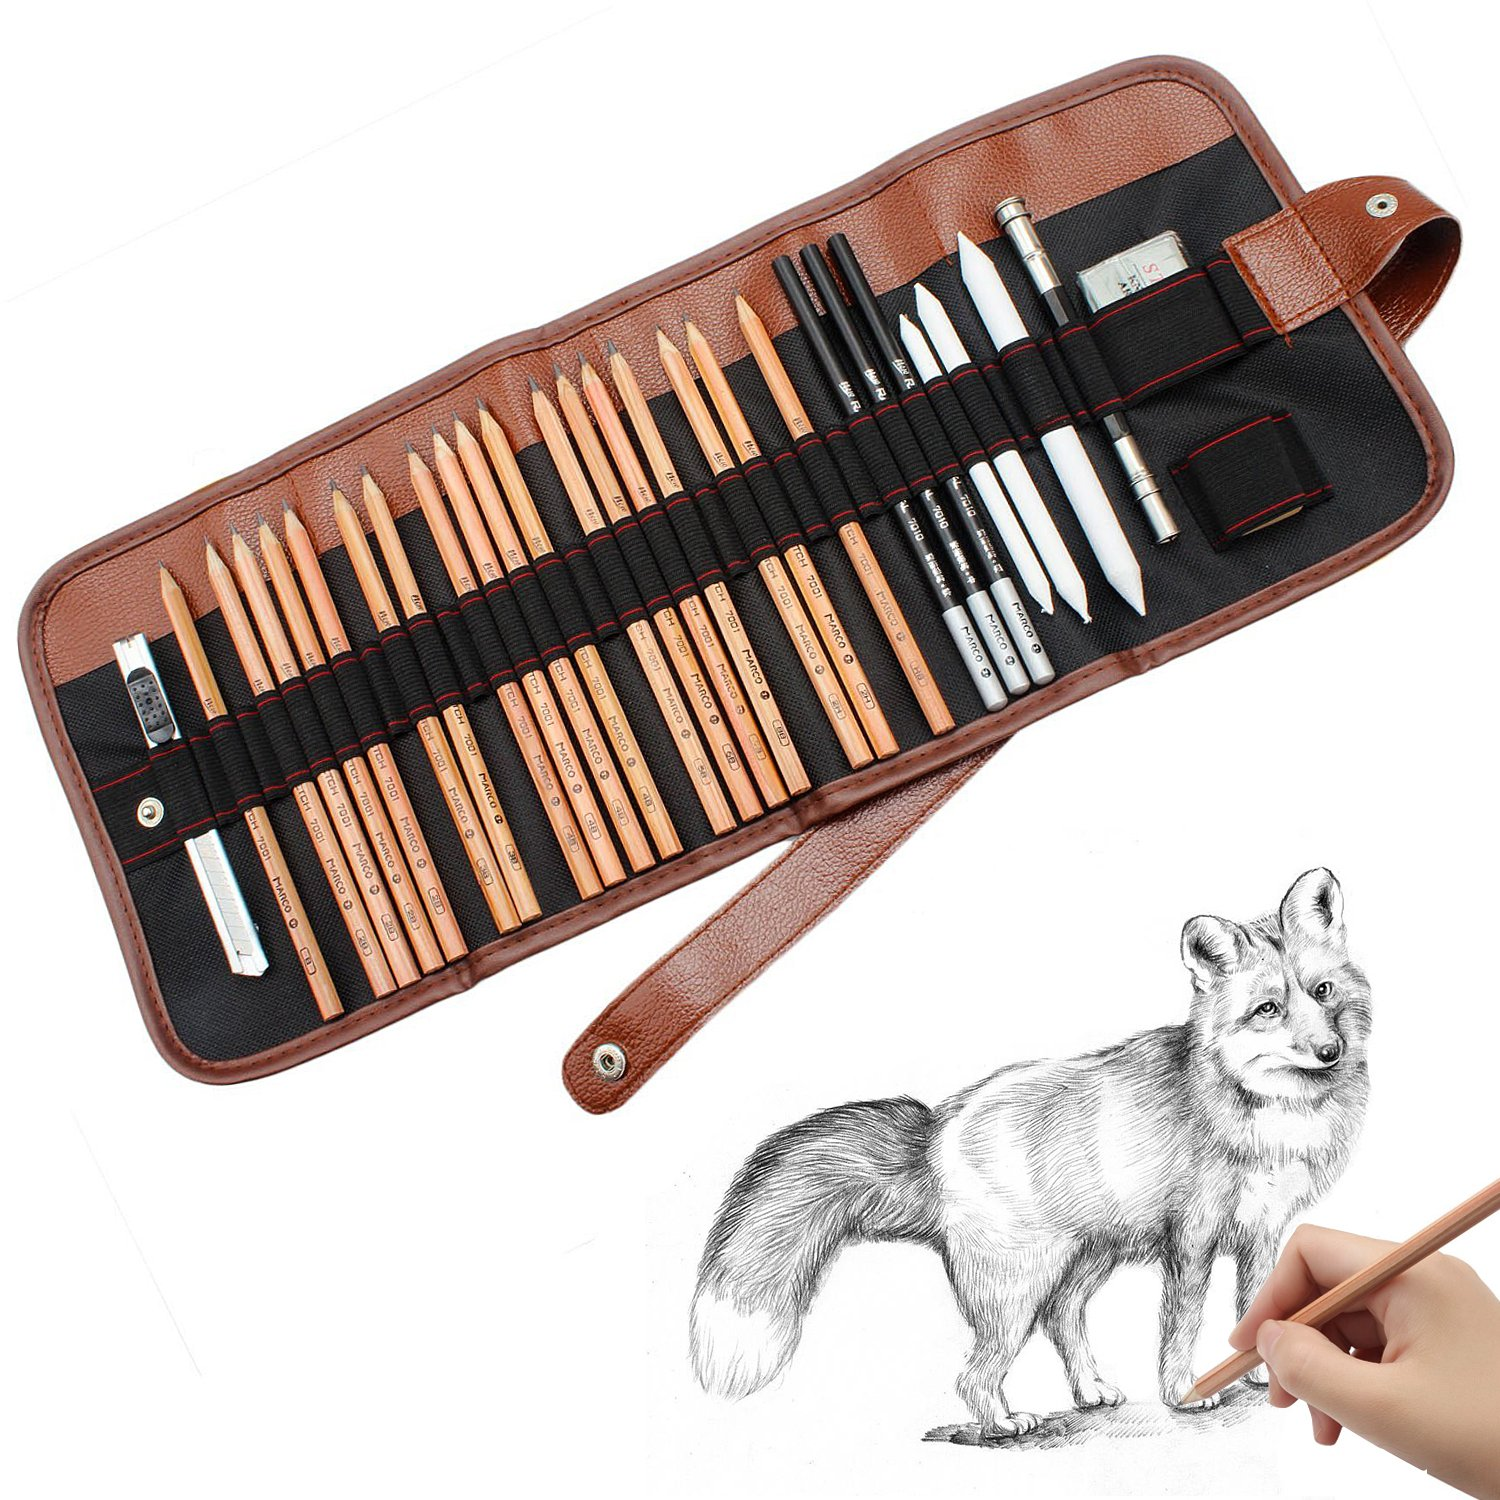 Caroyla sketch pencil drawing pencil set 29 piece sketching art kit for beginners sketch graphite pencils erasers craft knife pencil extender for